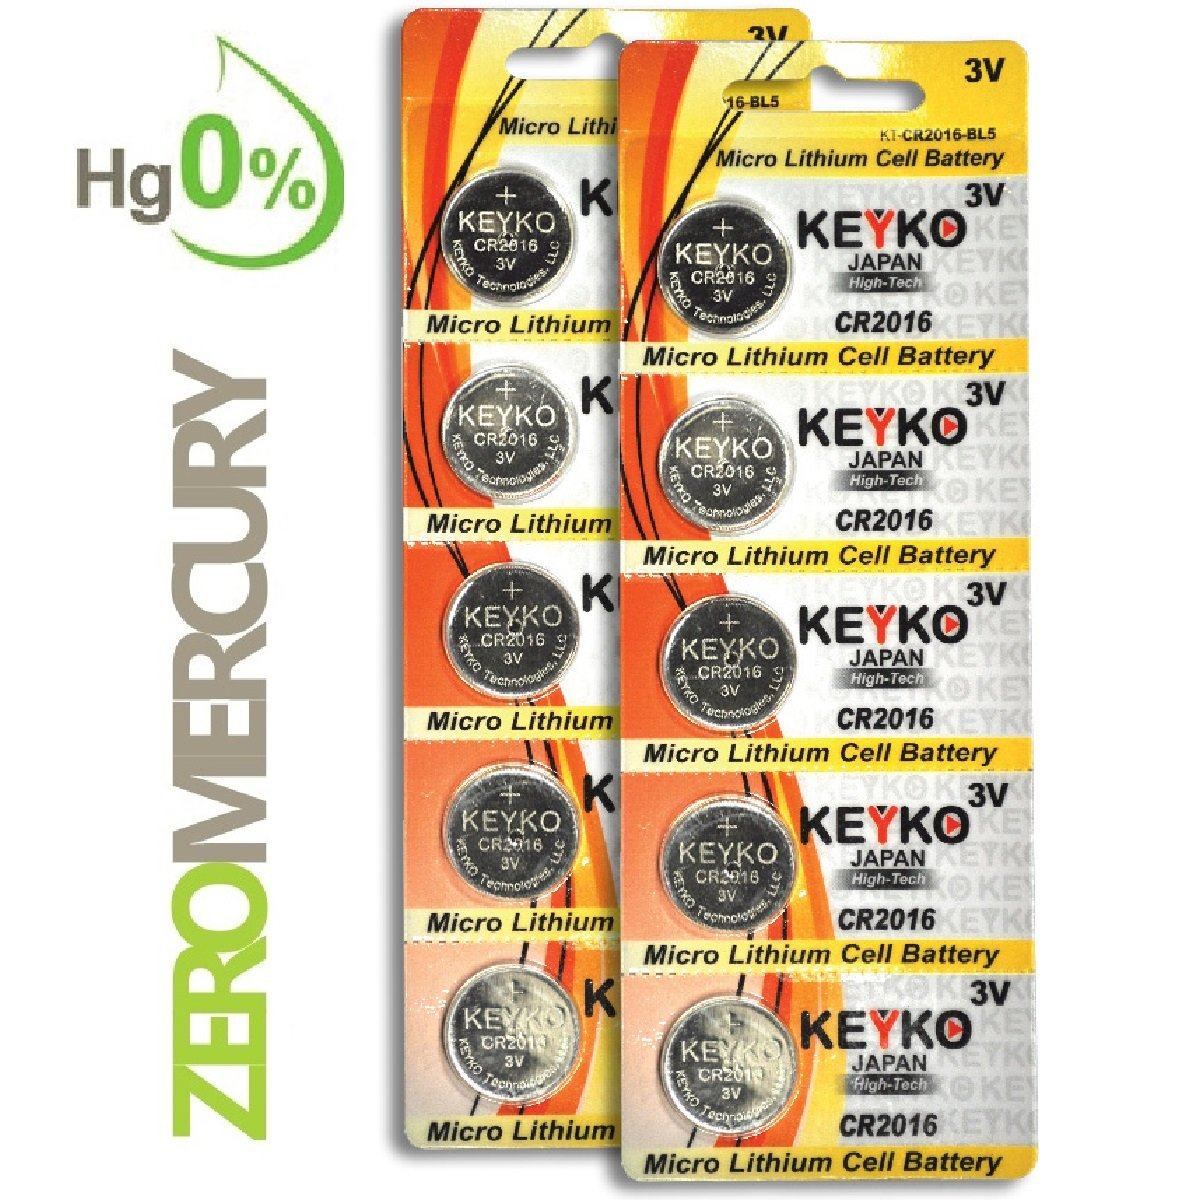 CR2016 Battery 3V Lithium Coin Cell Battery Type 2016   DL2016   ECR2016  Genuine KEYKO. Amazon com  10 Pcs Lithium Coin Loopacell Battery 3v For Keyless